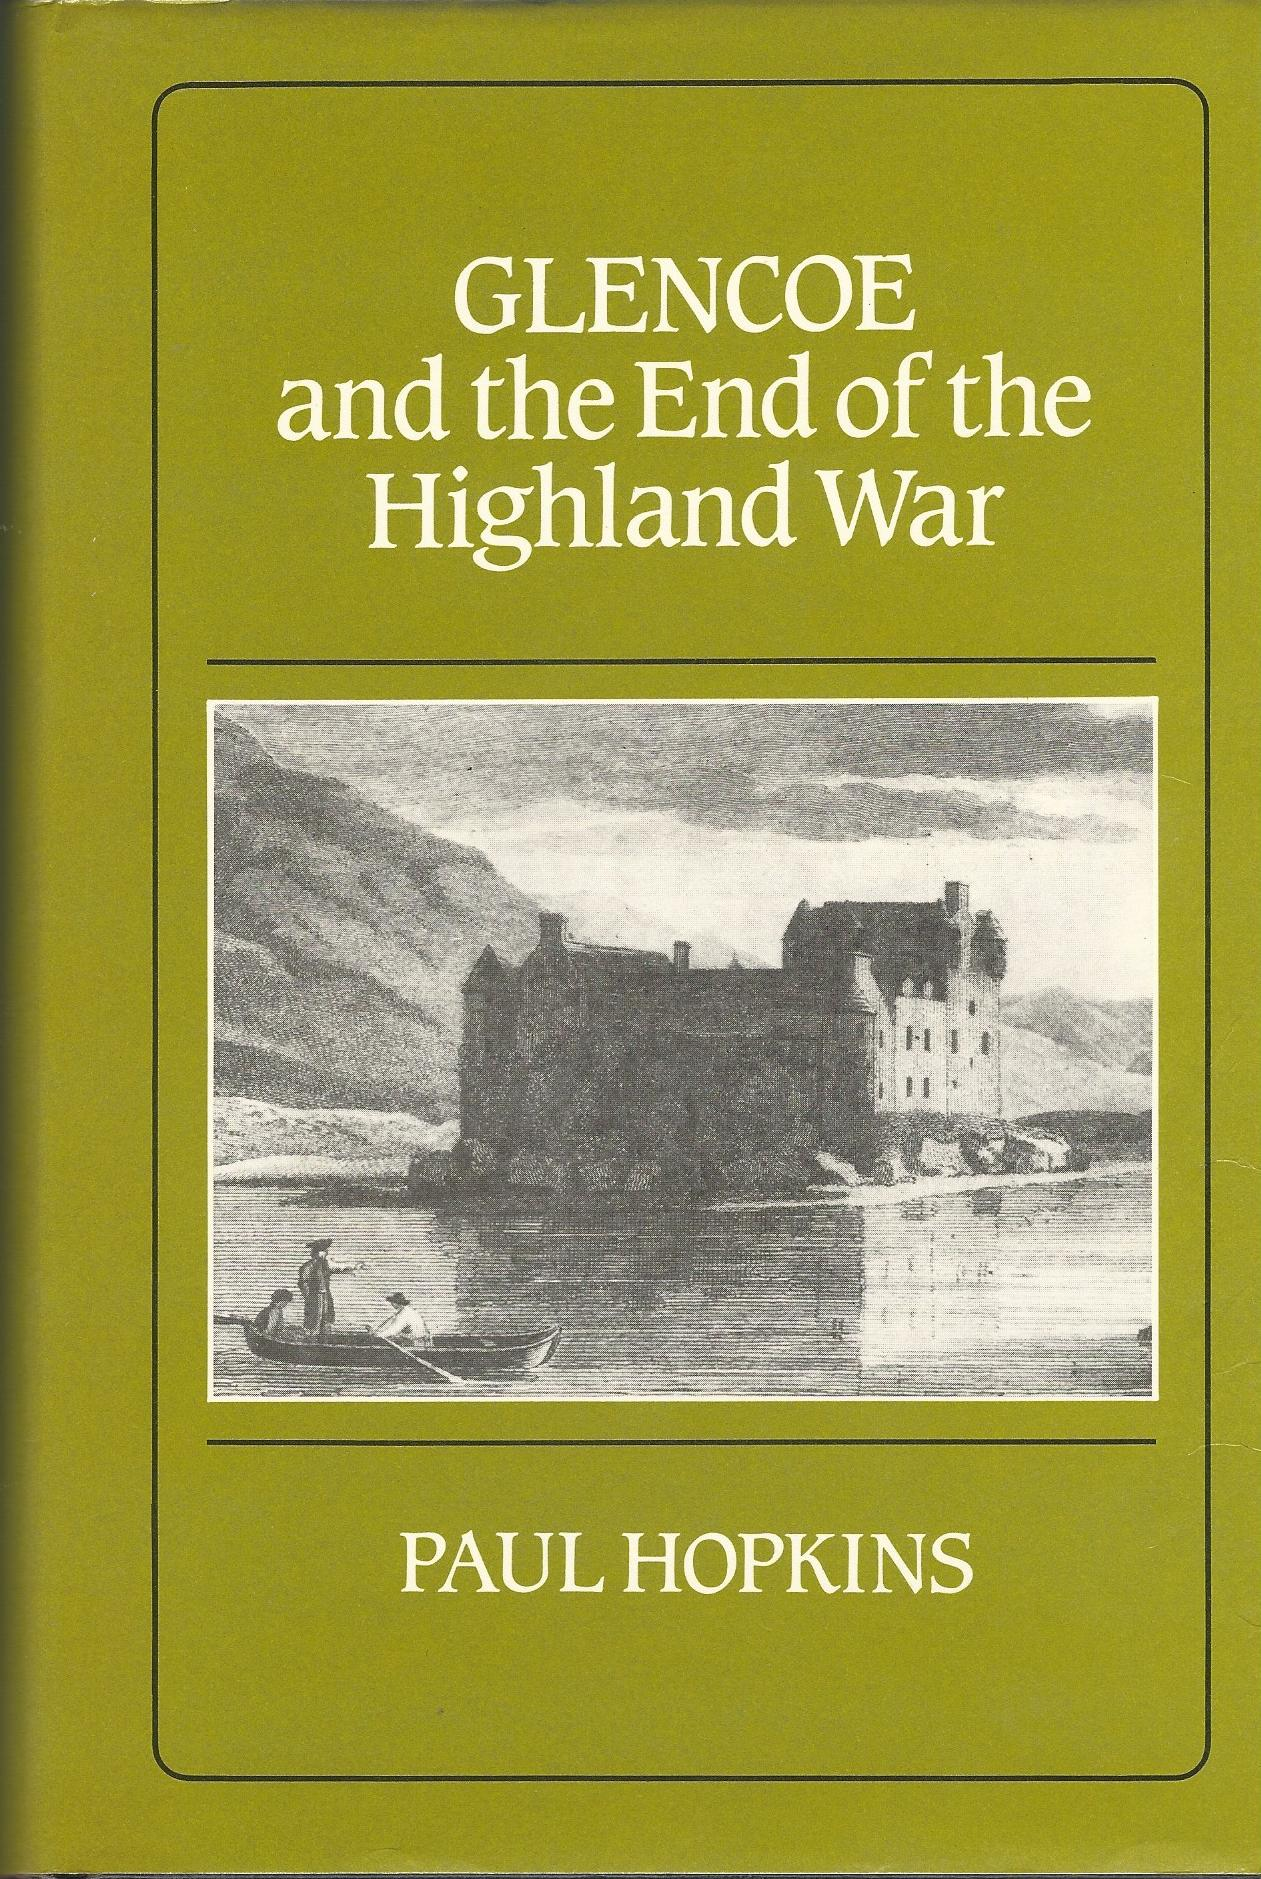 Image for Glencoe and the End of the Highland War